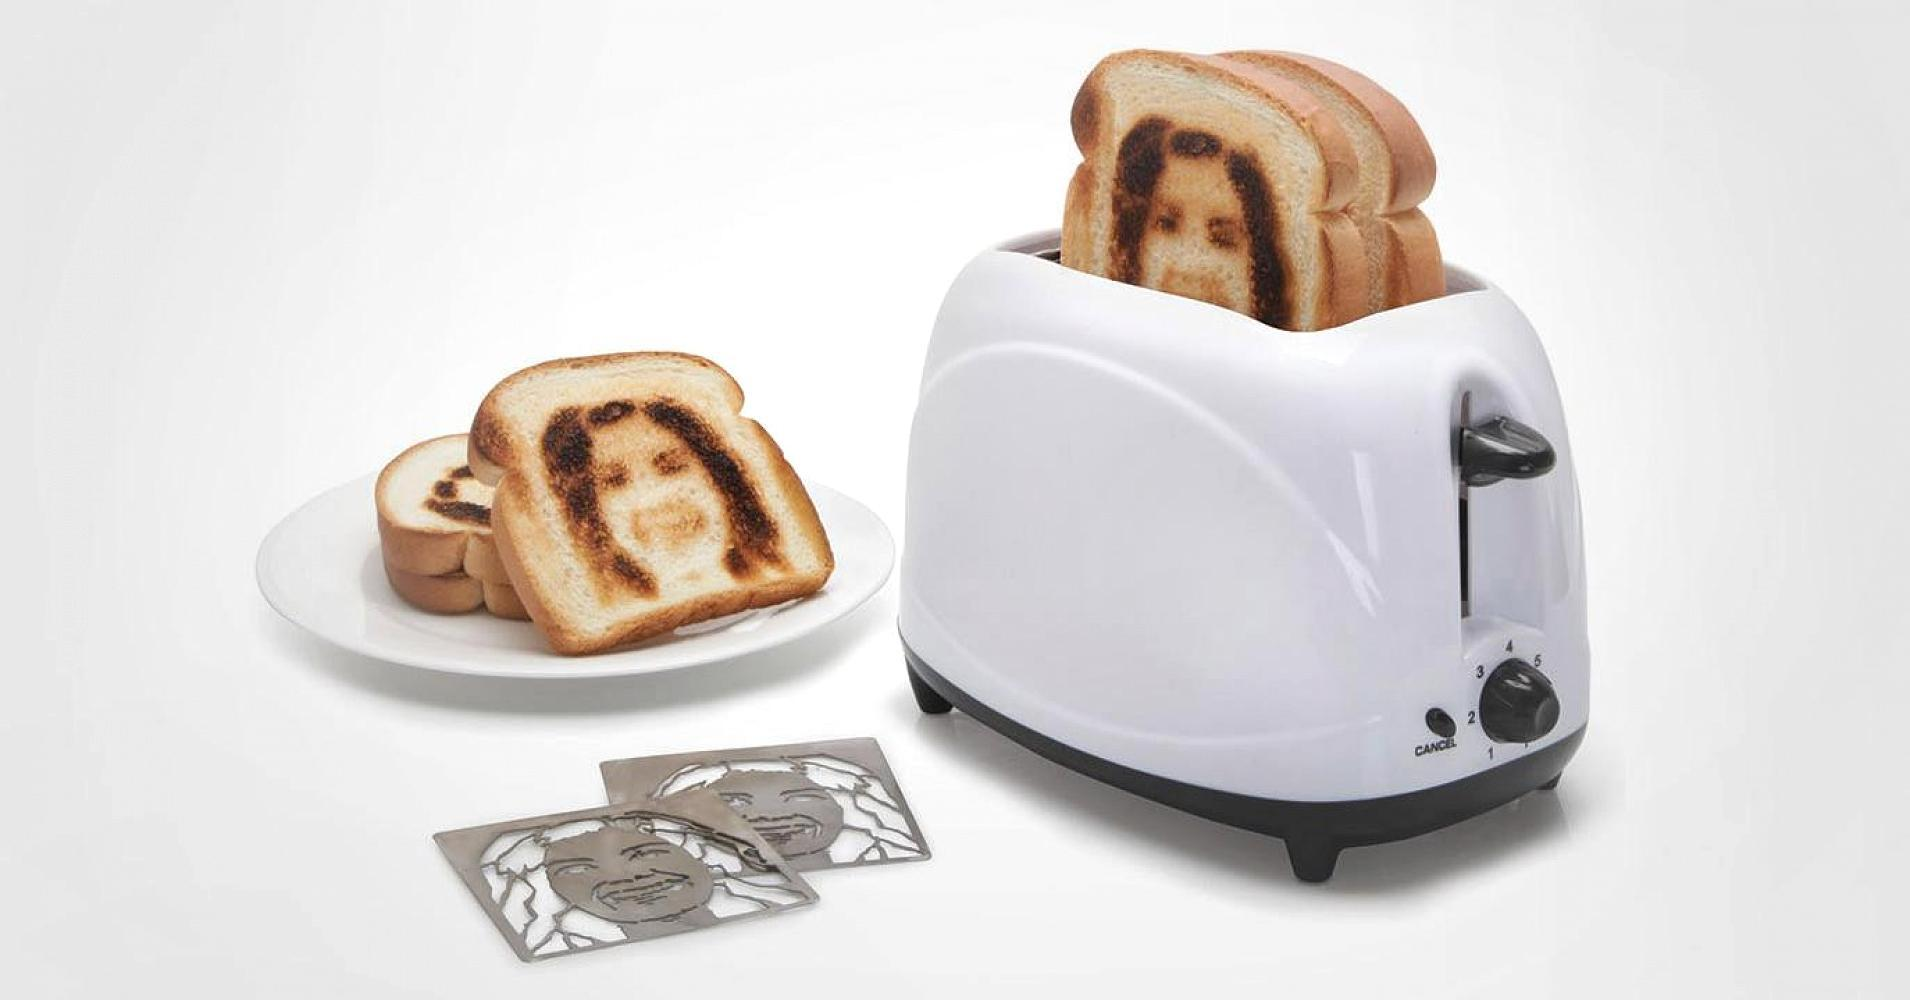 Selfie toaster and other holiday must-haves: VC